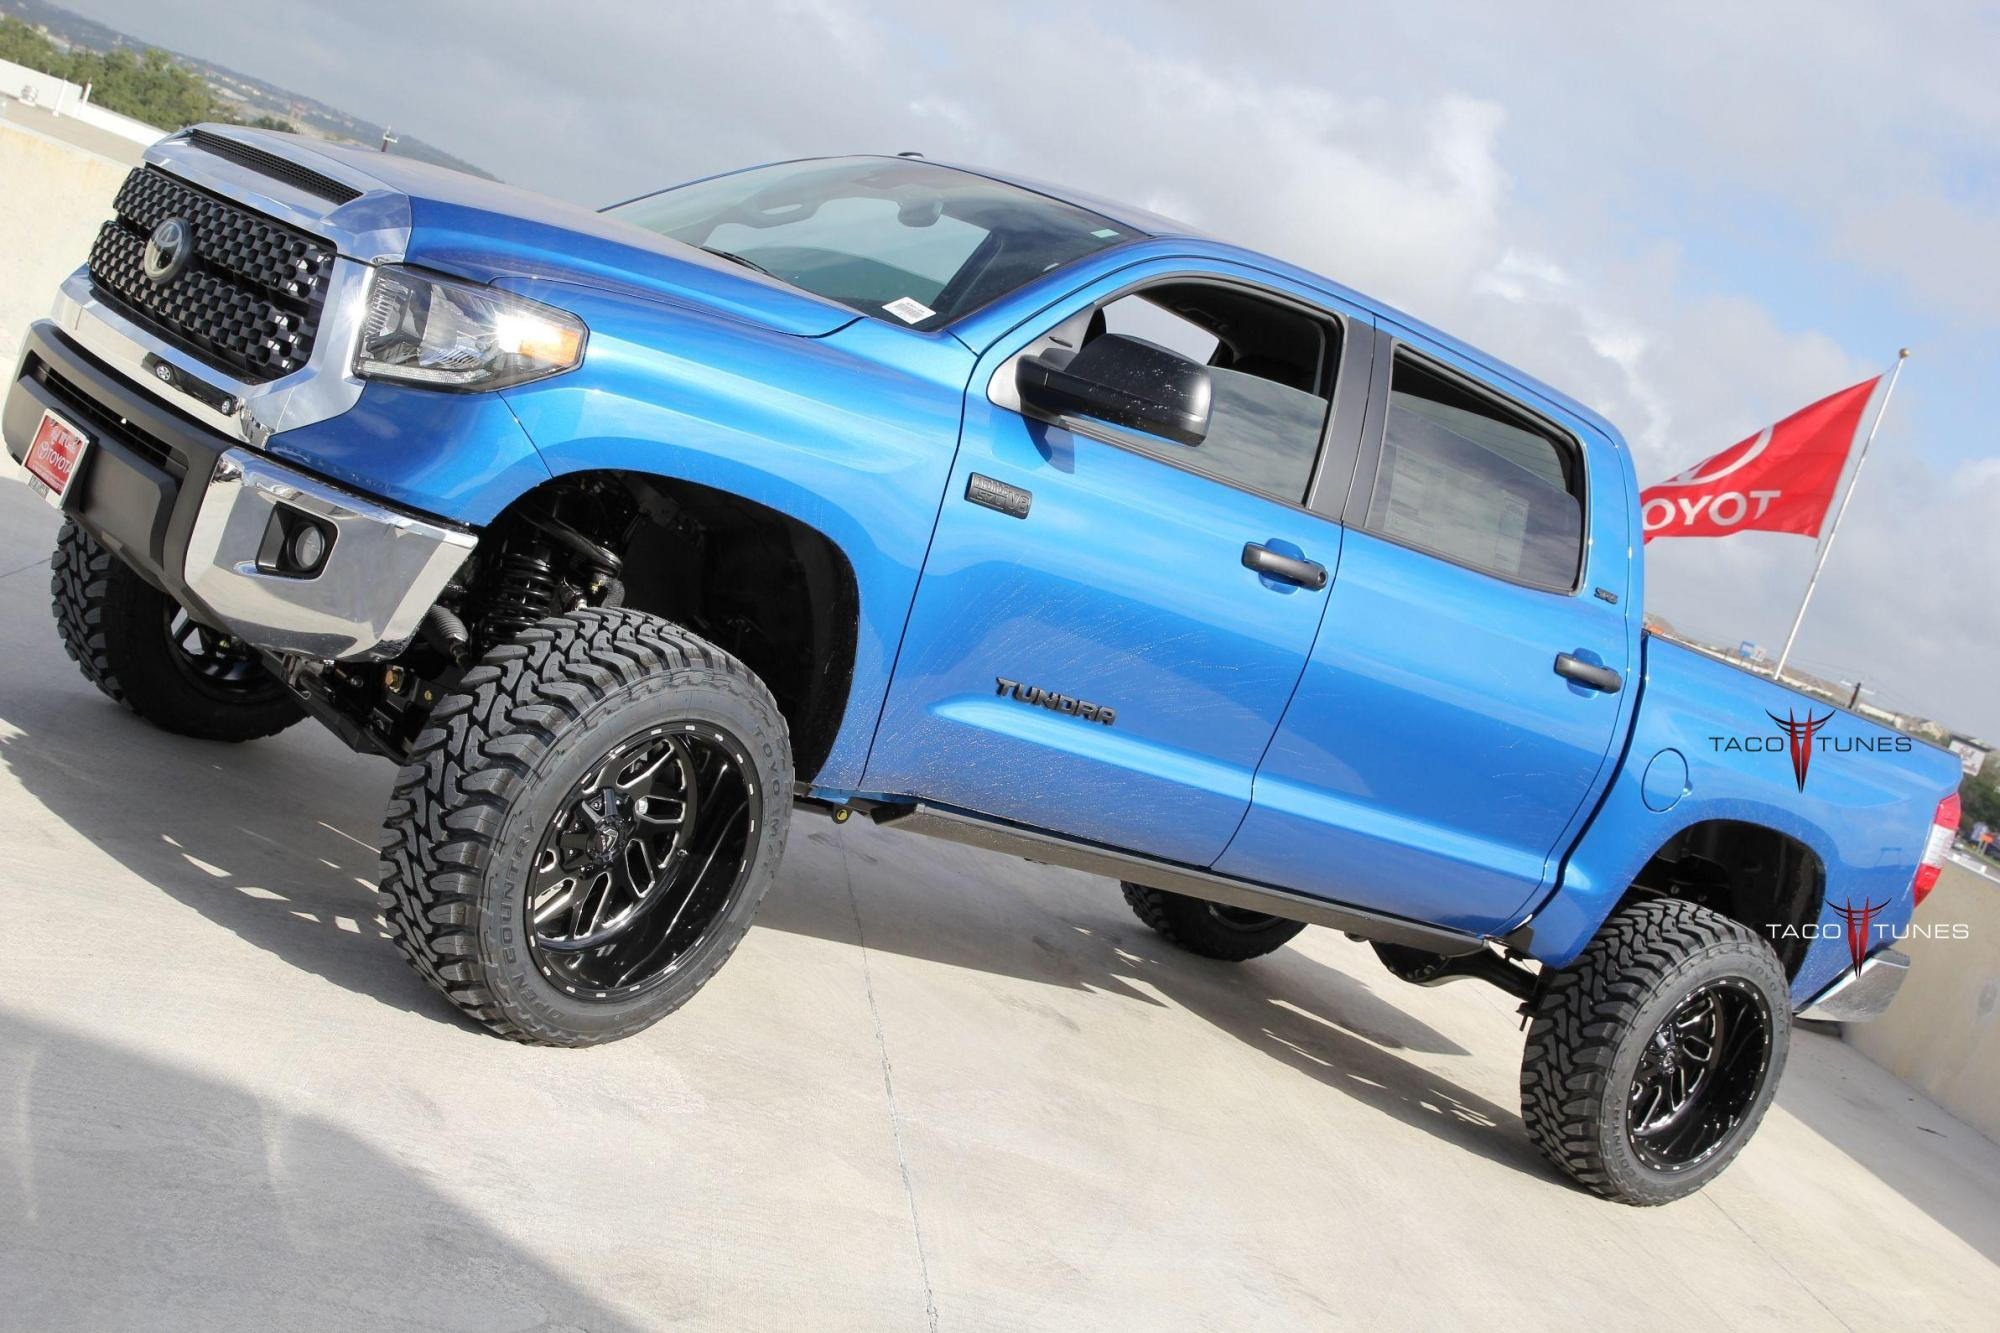 hight resolution of we have installed over 1 000 toyota tundra audio systems here in the san antonio area over 20 000 tundra customers have our tundra products